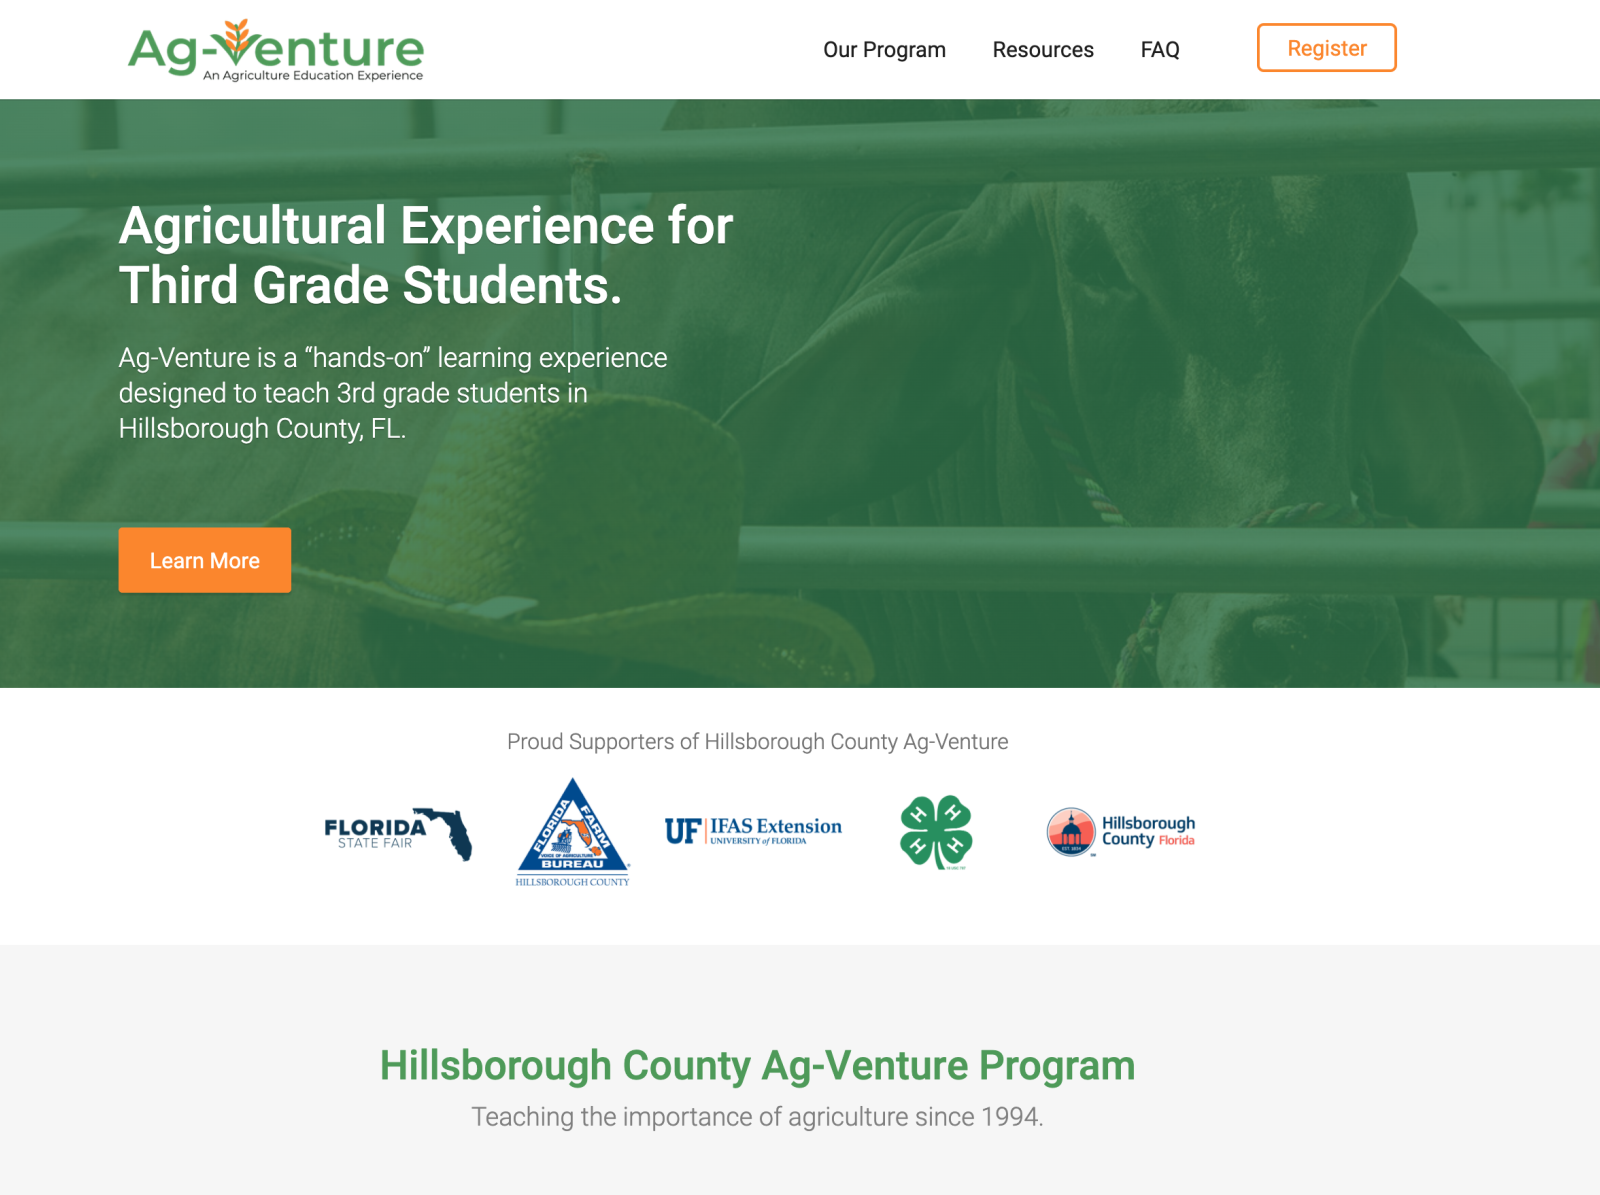 Agventure Web Design By Corey Darnell On Dribbble